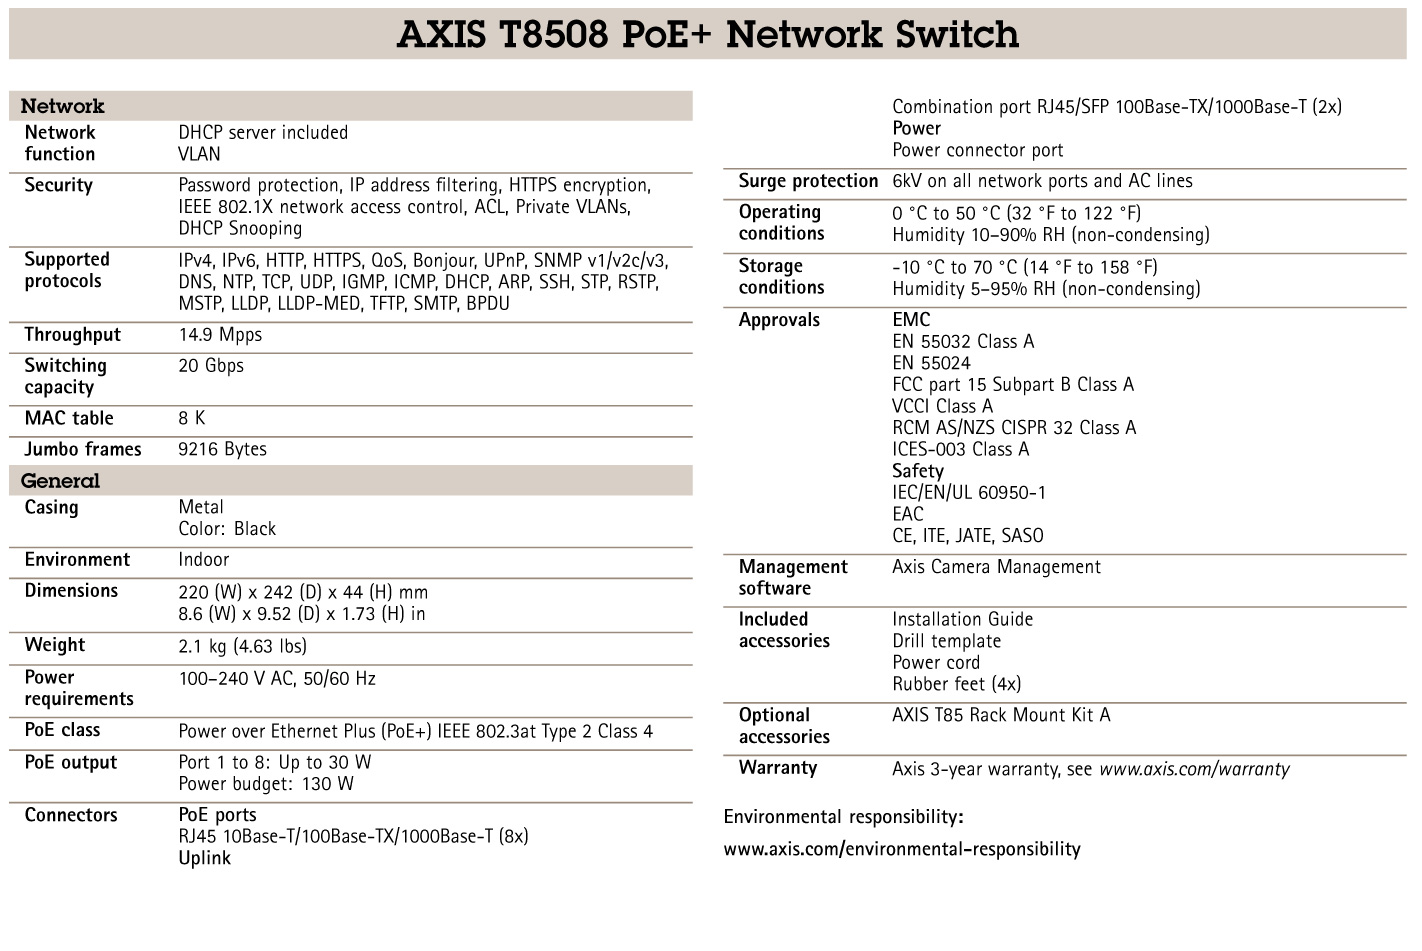 T8508 POE+ Network Switch